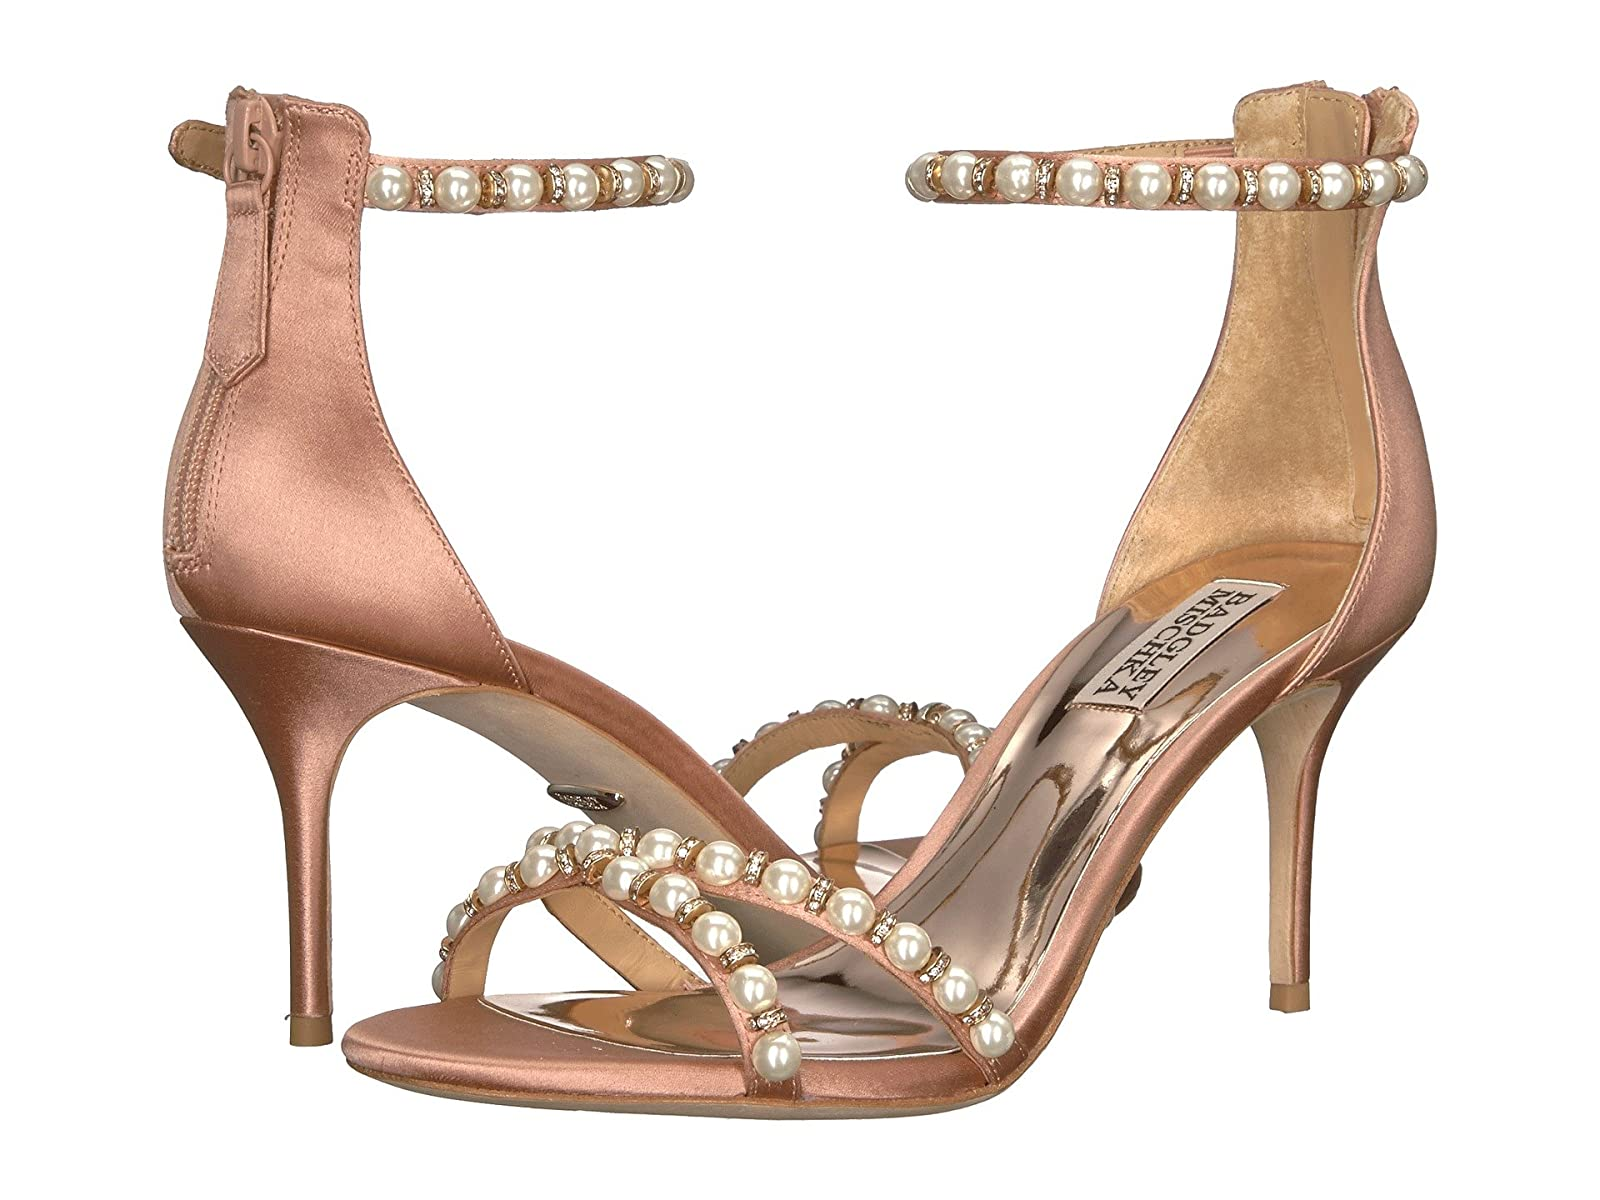 Badgley Mischka HannahCheap and distinctive eye-catching shoes